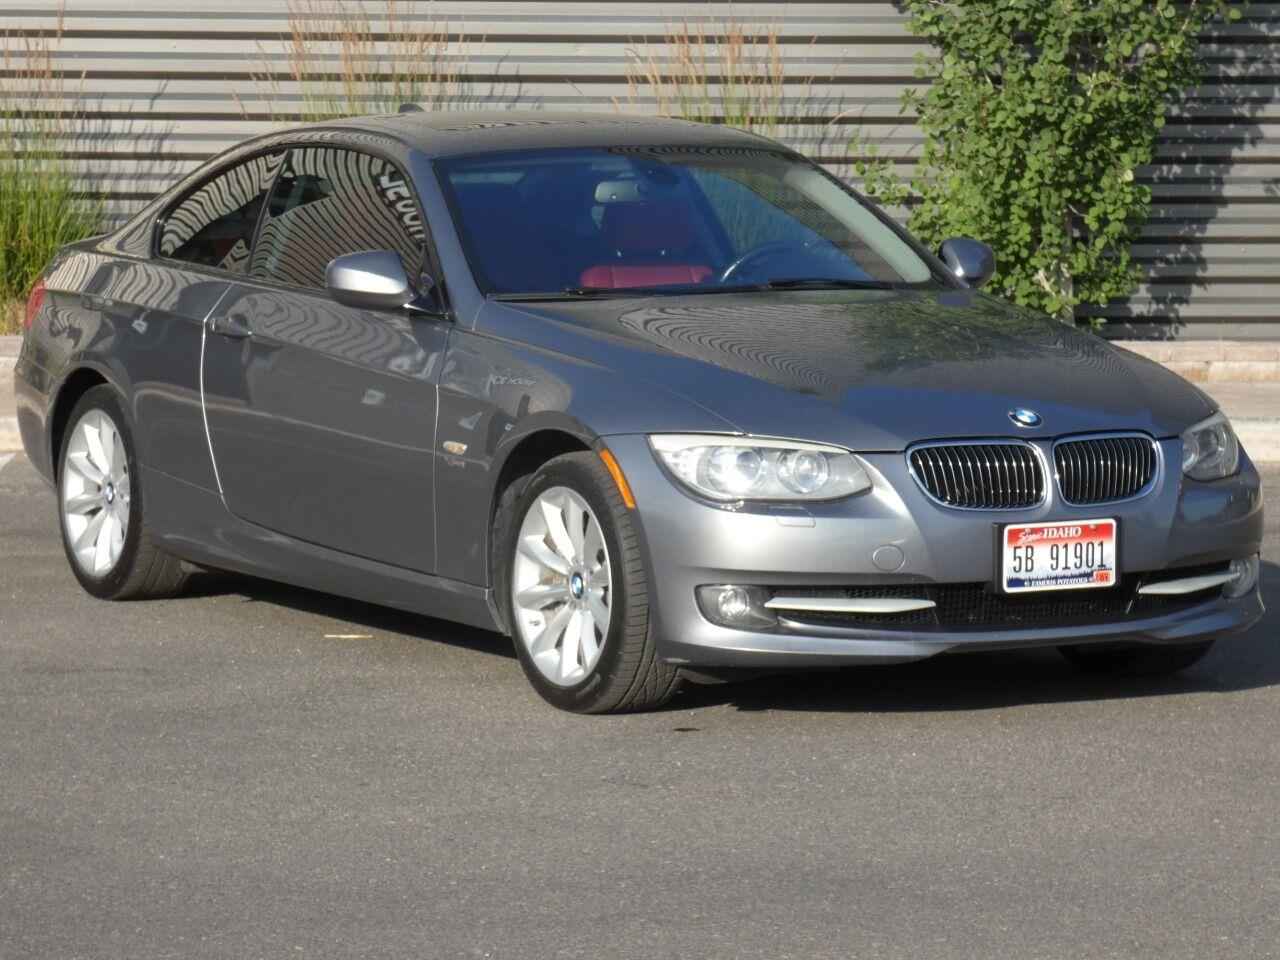 for sale 2011 bmw 3 series in hailey, idaho cars - hailey, id at geebo